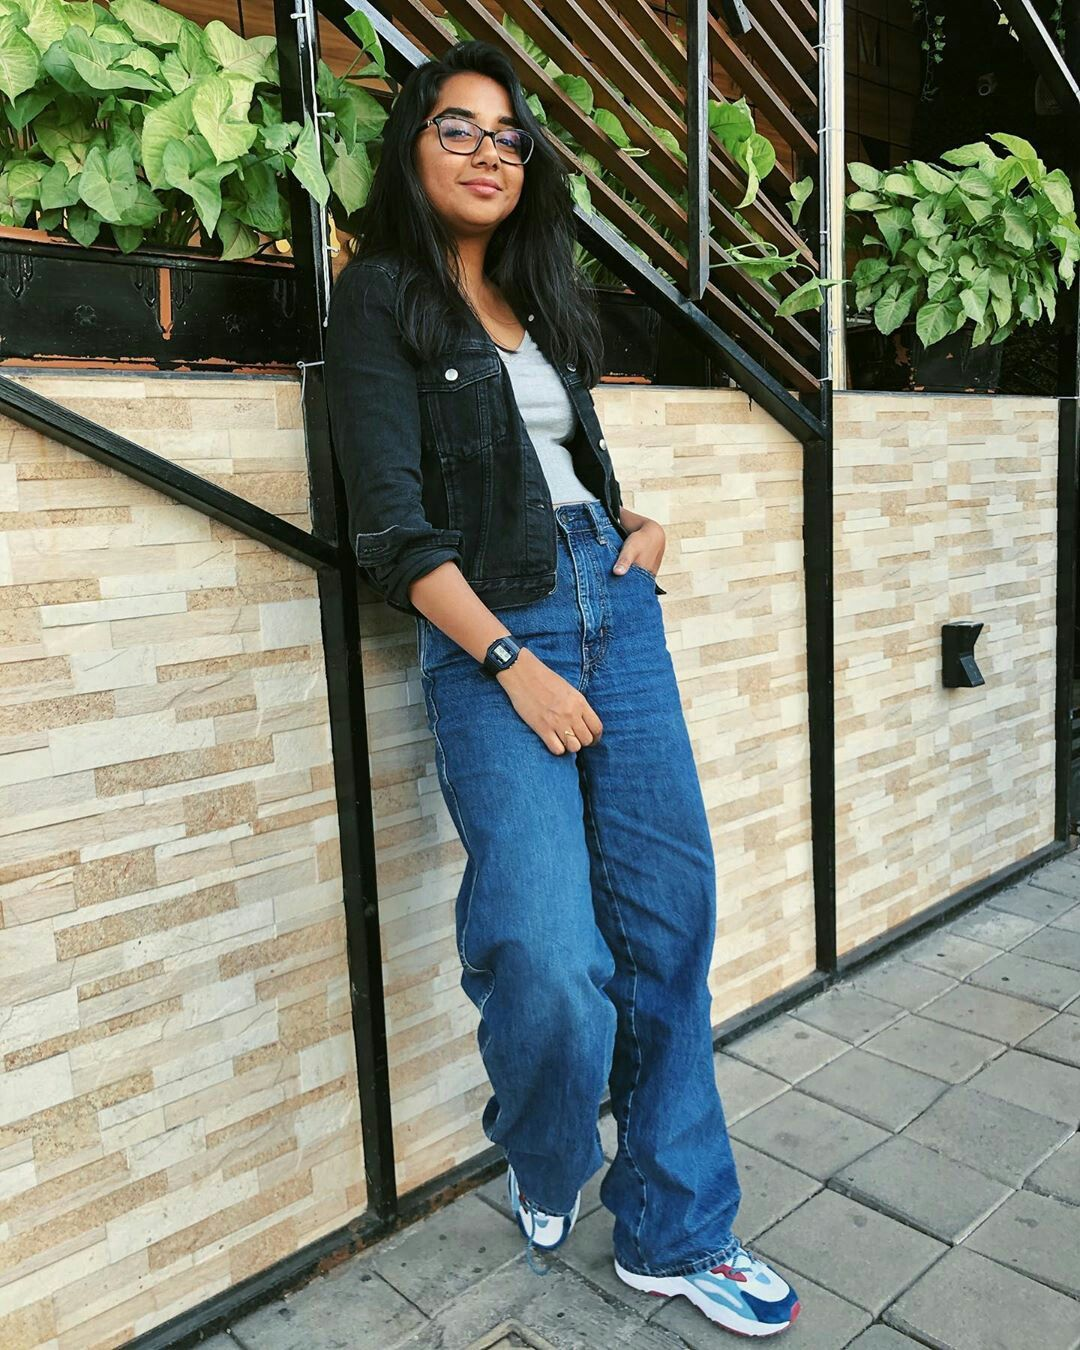 Youtuber Mostlysane Aka Prajakta Koli's Incredible Oversize Looks, Gorgeous!